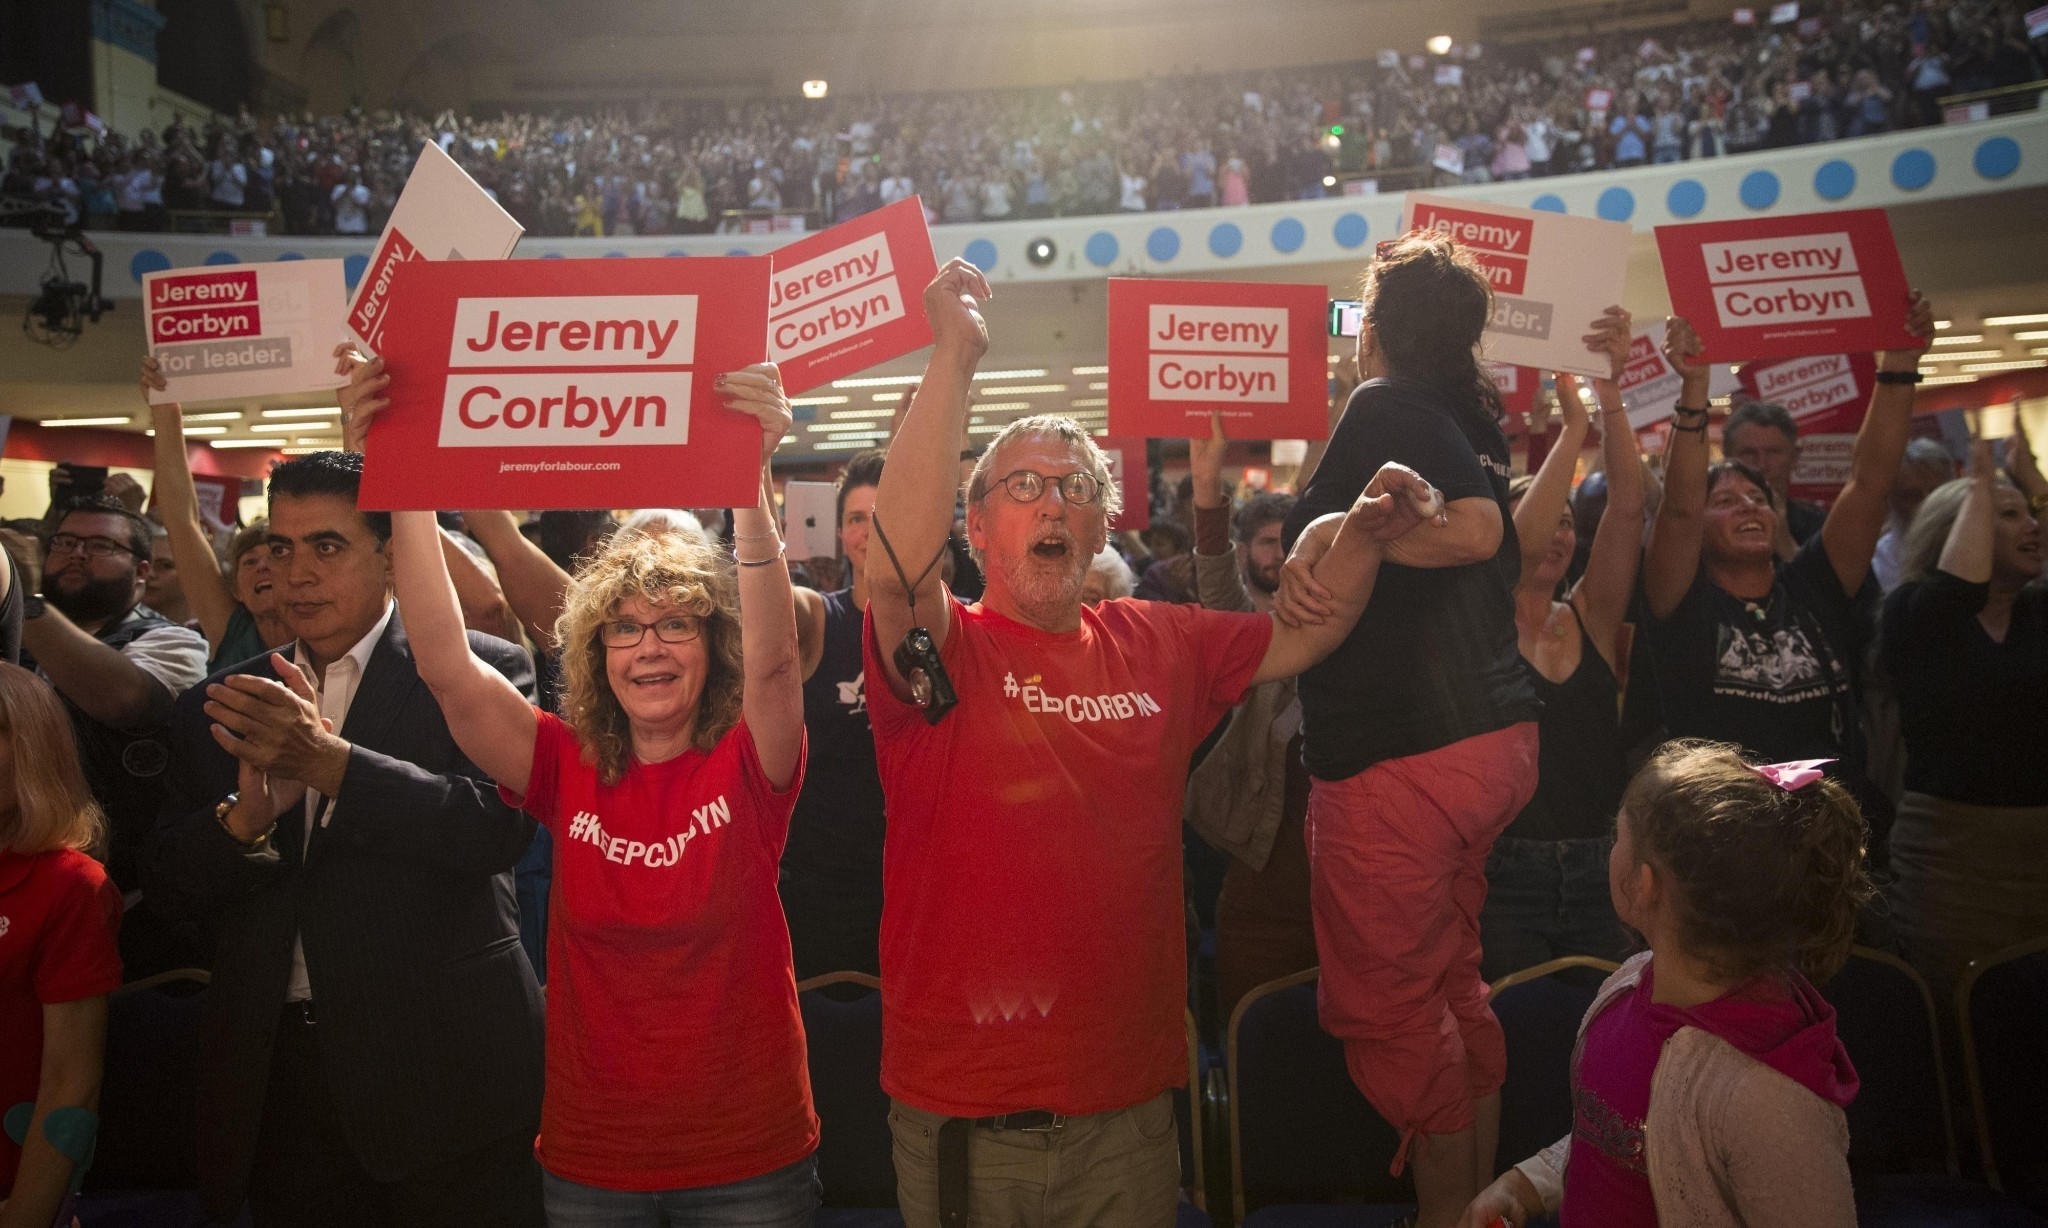 I fought the hard left in the 1980s. Now I'm backing Corbyn